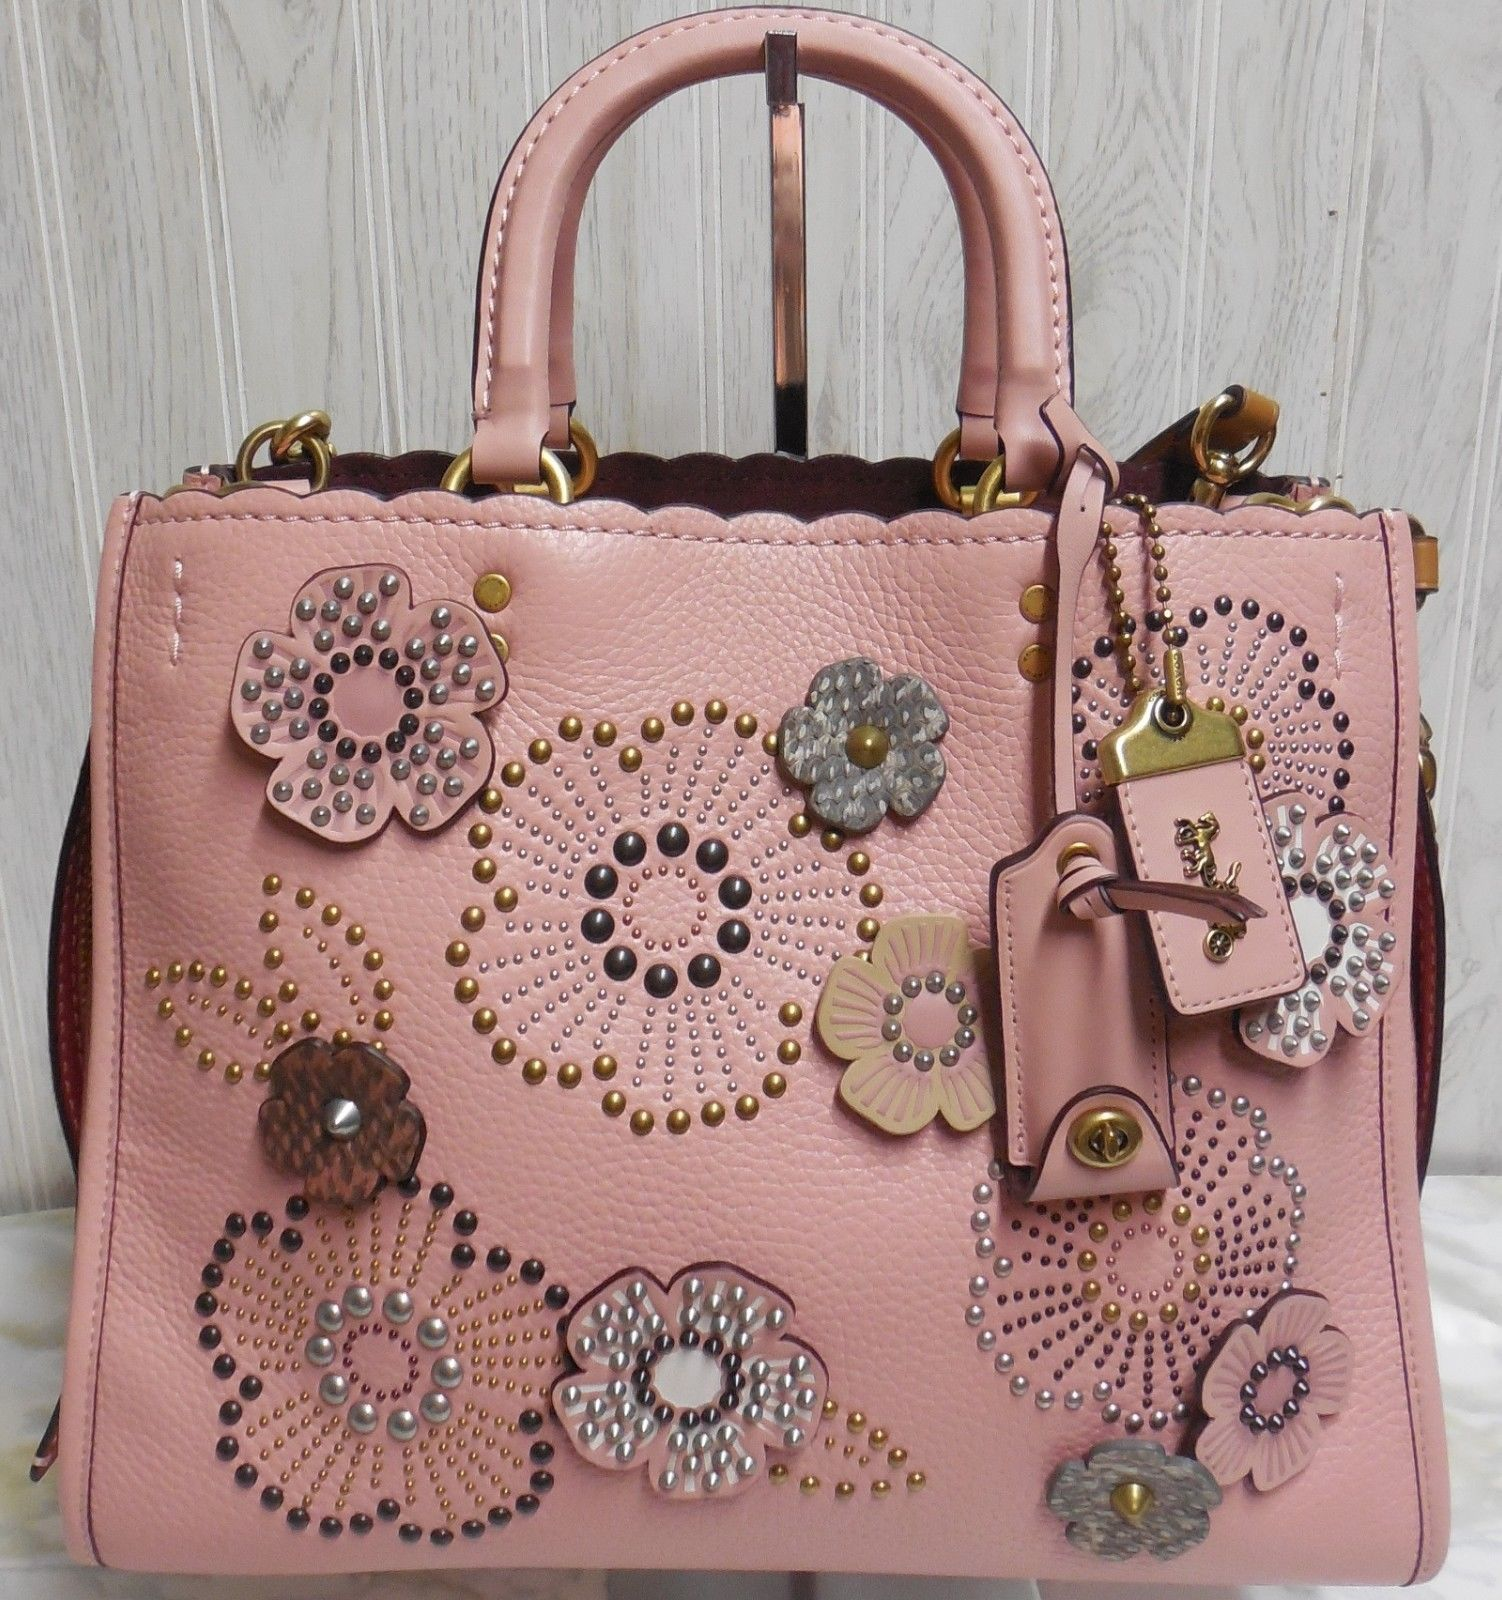 4c492ce01c NWT Coach 1941 Rogue With Snakeskin Tea Rose Rivets in Pebble Leather 26890